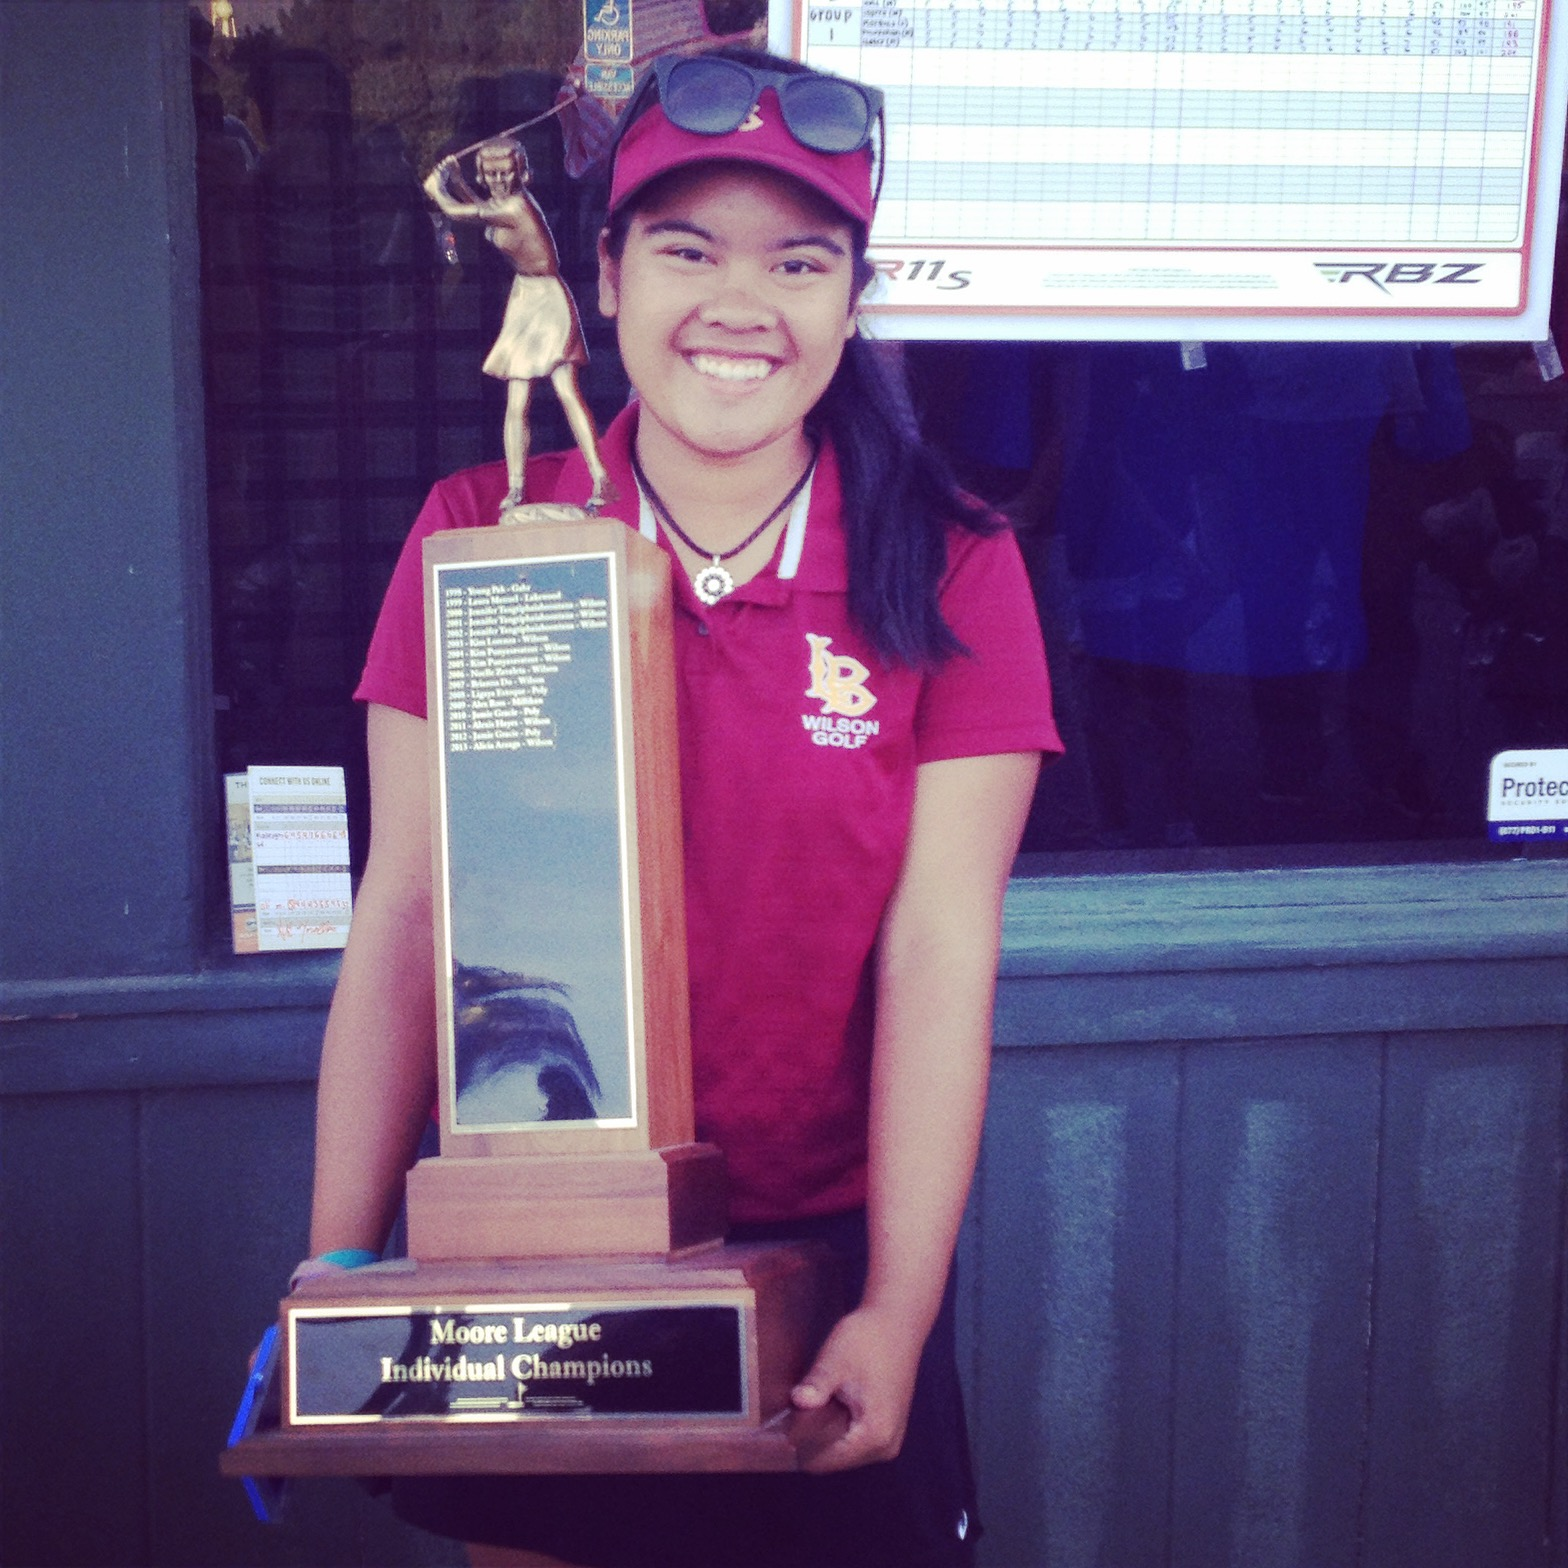 Ali Morallos - 2014 Moore League Individual Champion